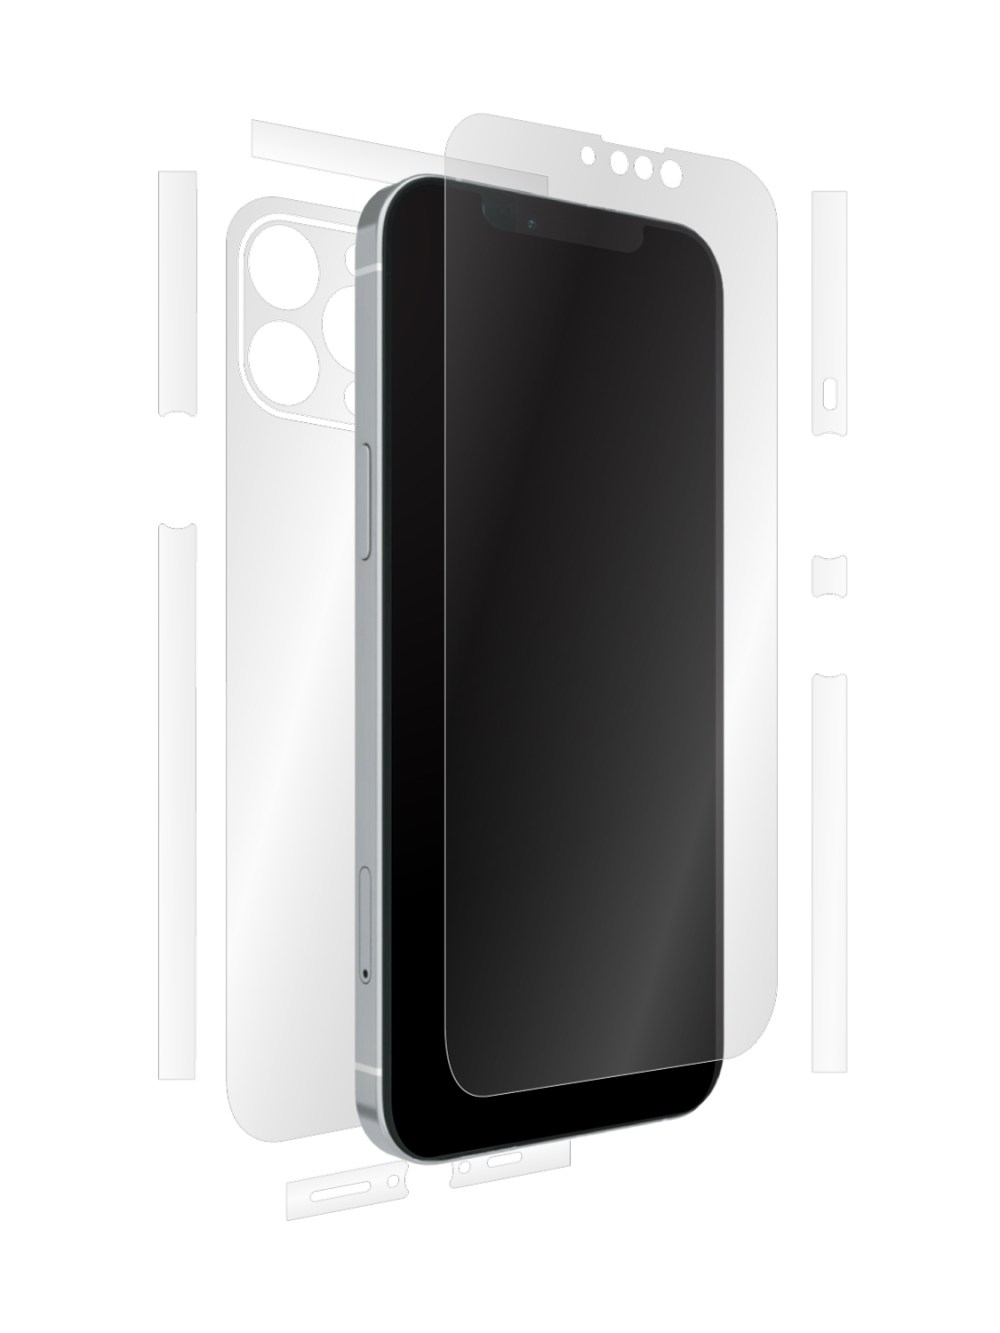 Full-body clear skin for iPhone 13 Max